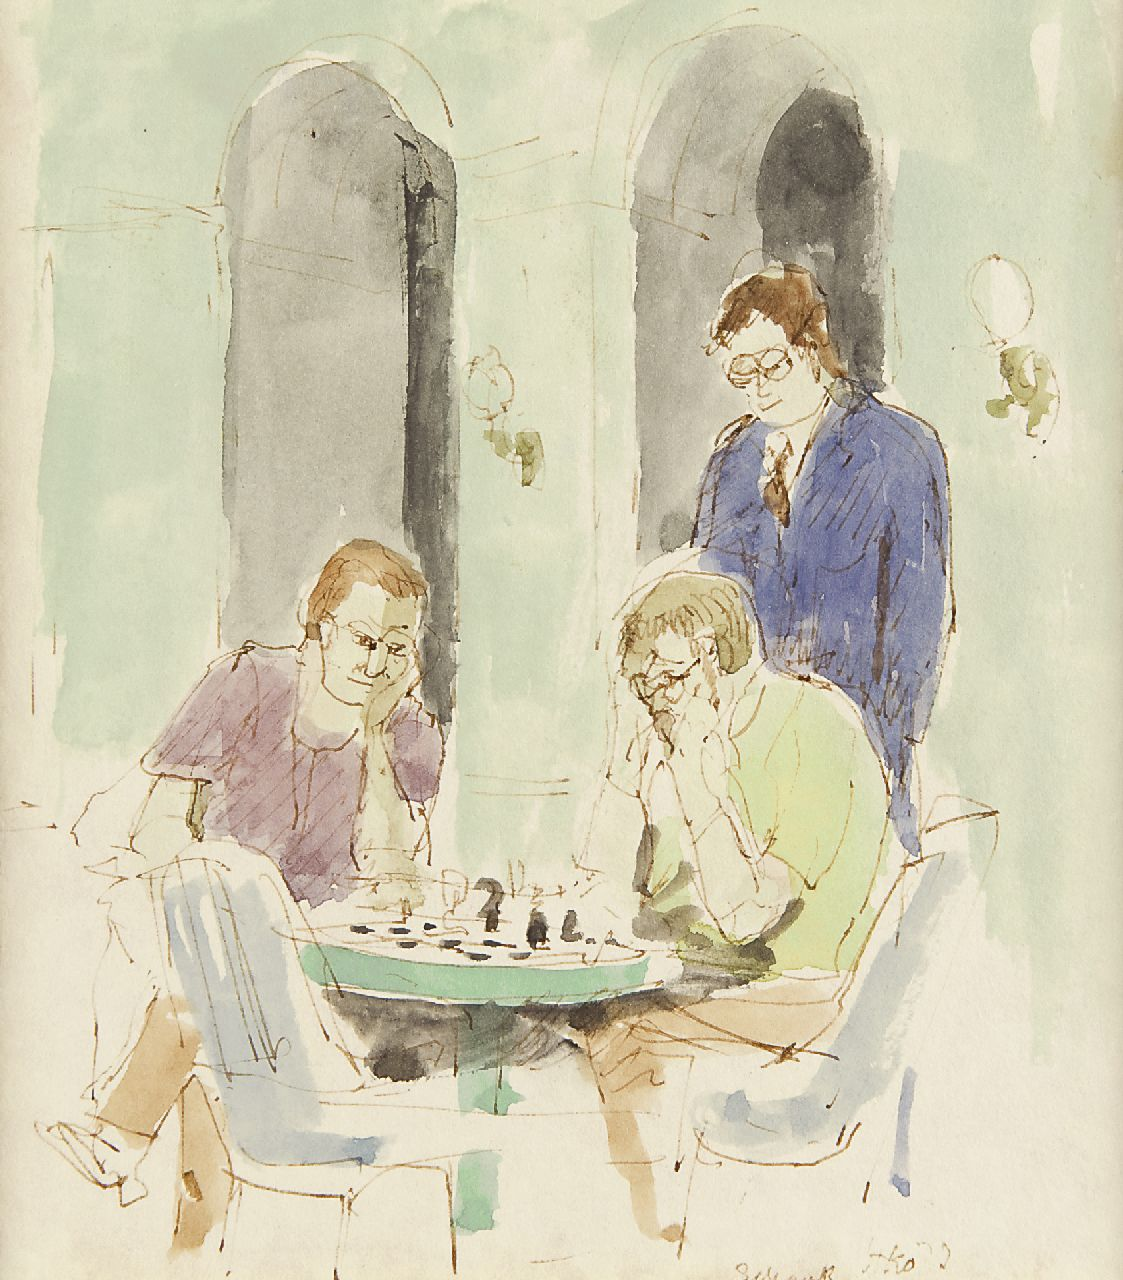 Kamerlingh Onnes H.H.  | 'Harm' Henrick Kamerlingh Onnes | Watercolours and drawings offered for sale | The Chessplayers, pen, brown ink and watercolour on paper 17.4 x 15.8 cm, signed l.r. with monogram and dated '73